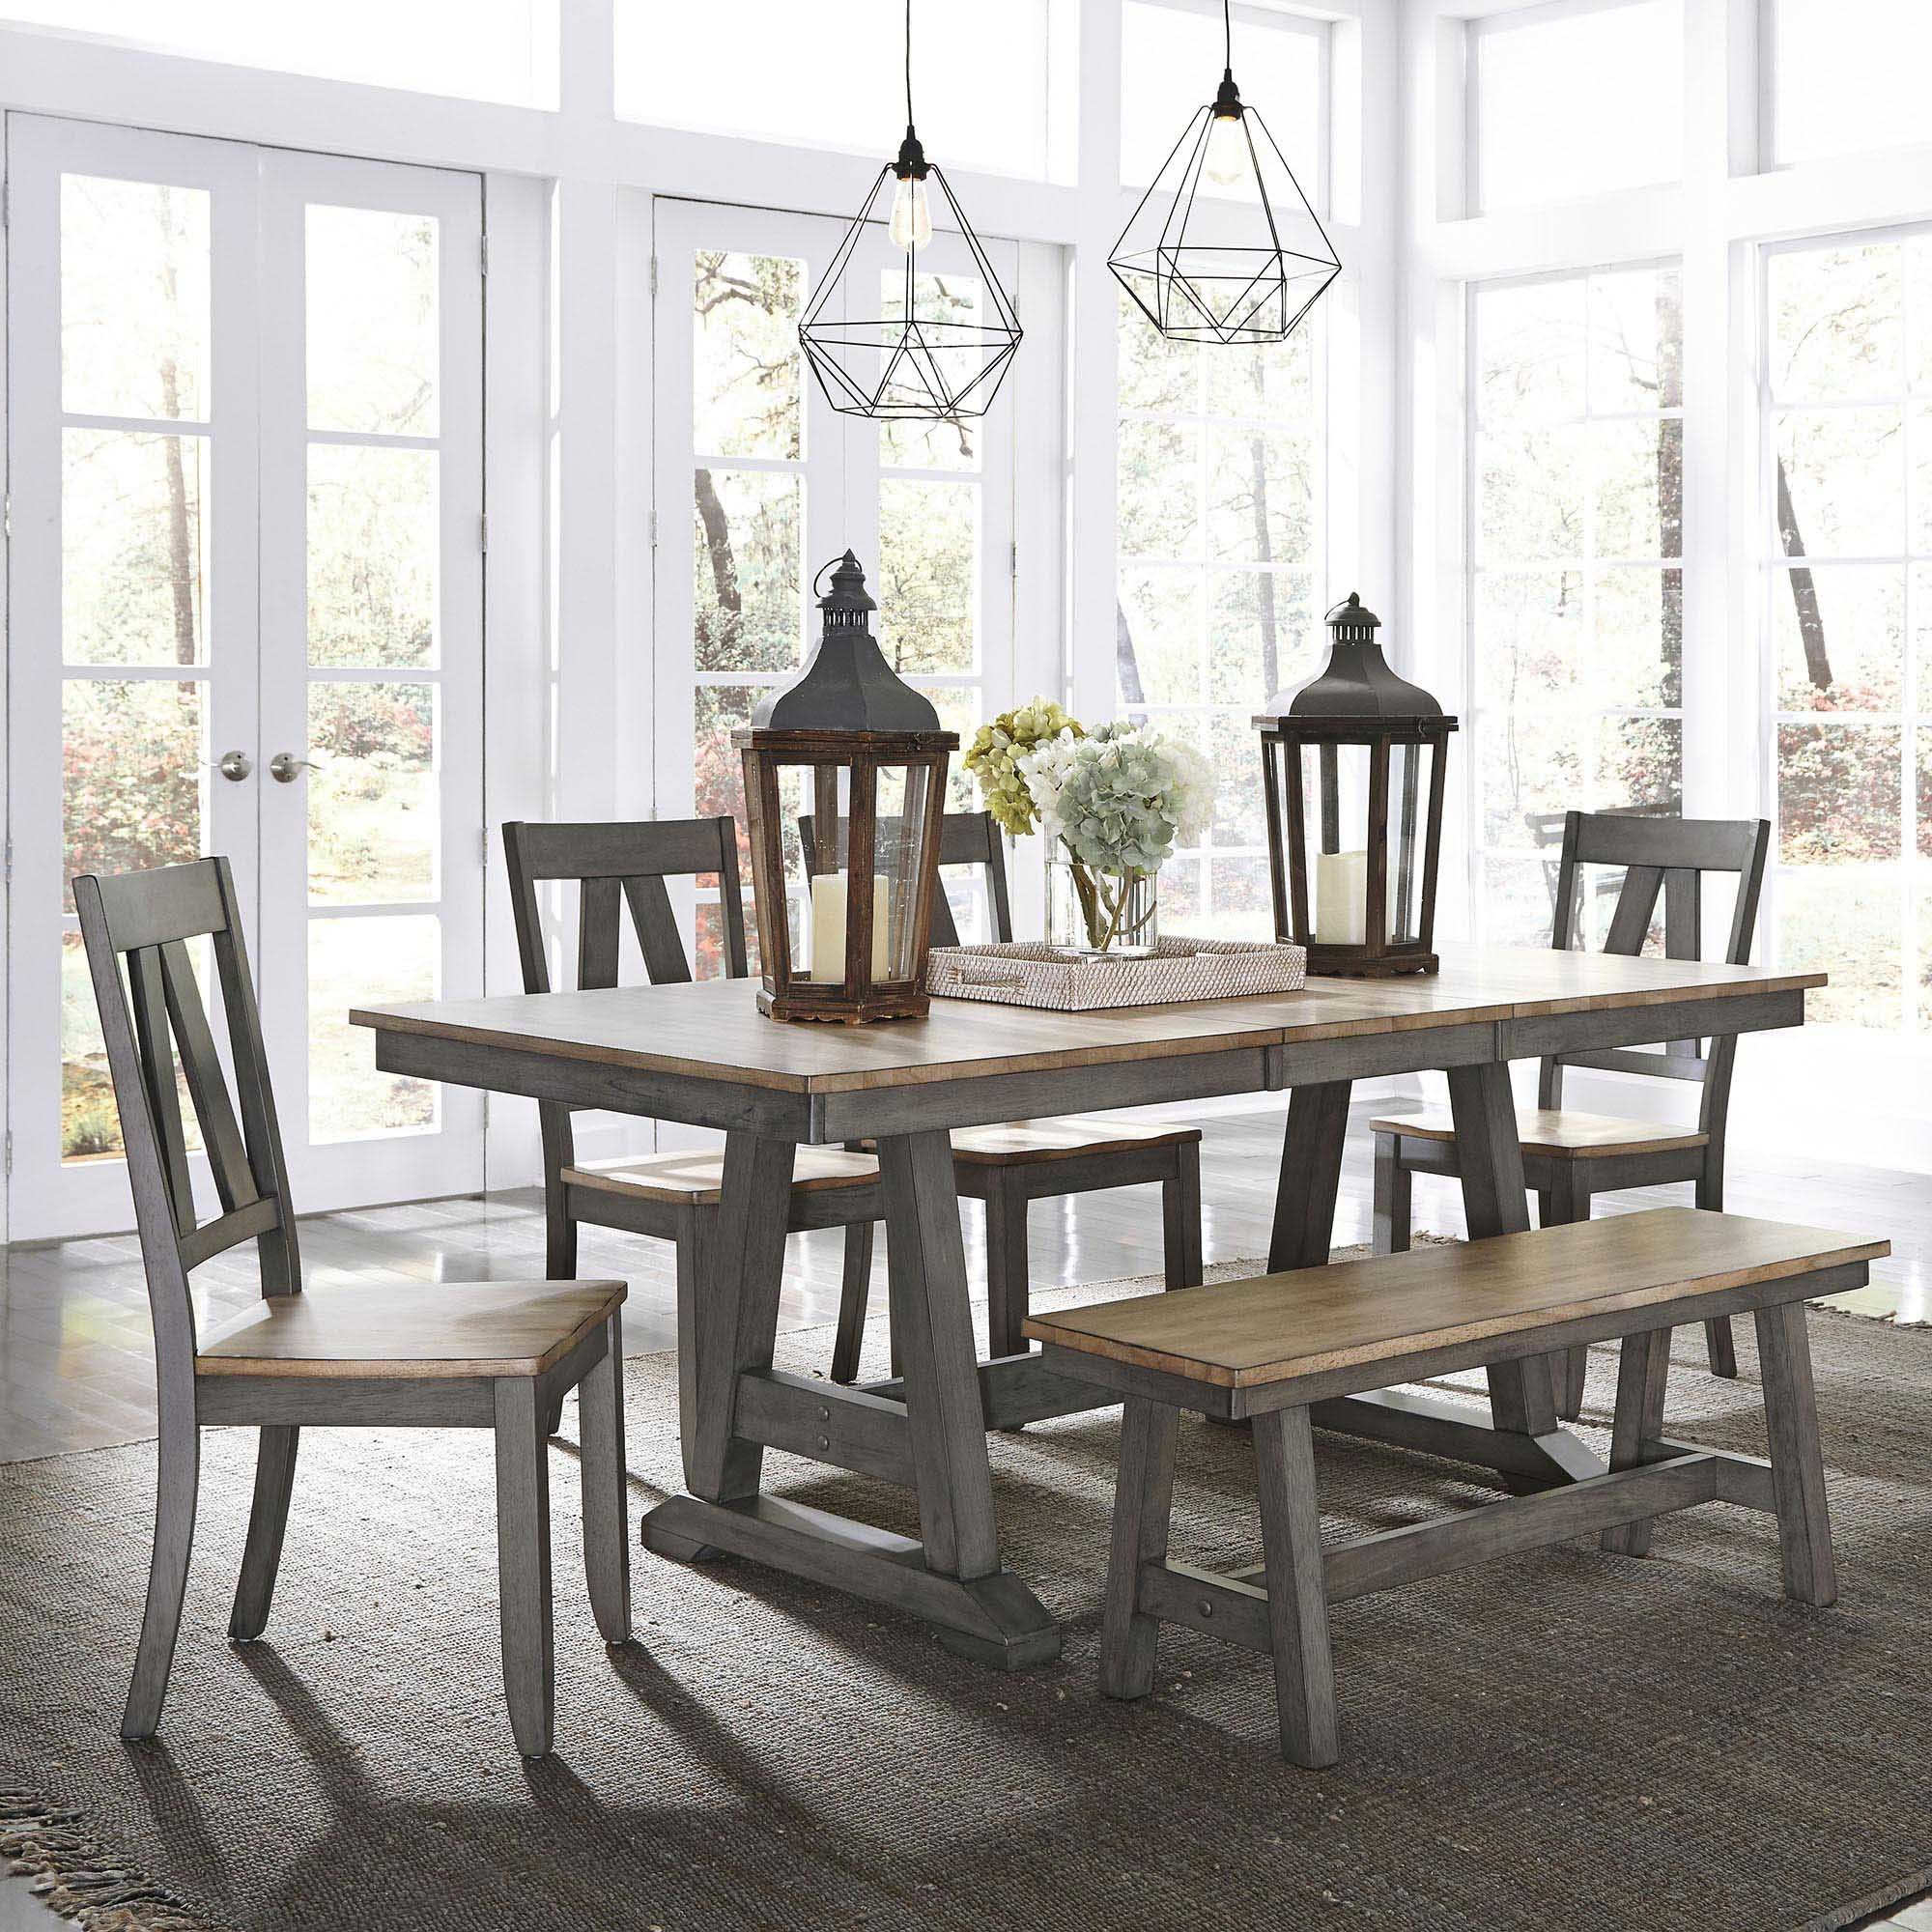 Kruger 6 Piece Extendable Solid Wood Dining Set Inside Most Up To Date Osterman 6 Piece Extendable Dining Sets (Set Of 6) (View 2 of 20)